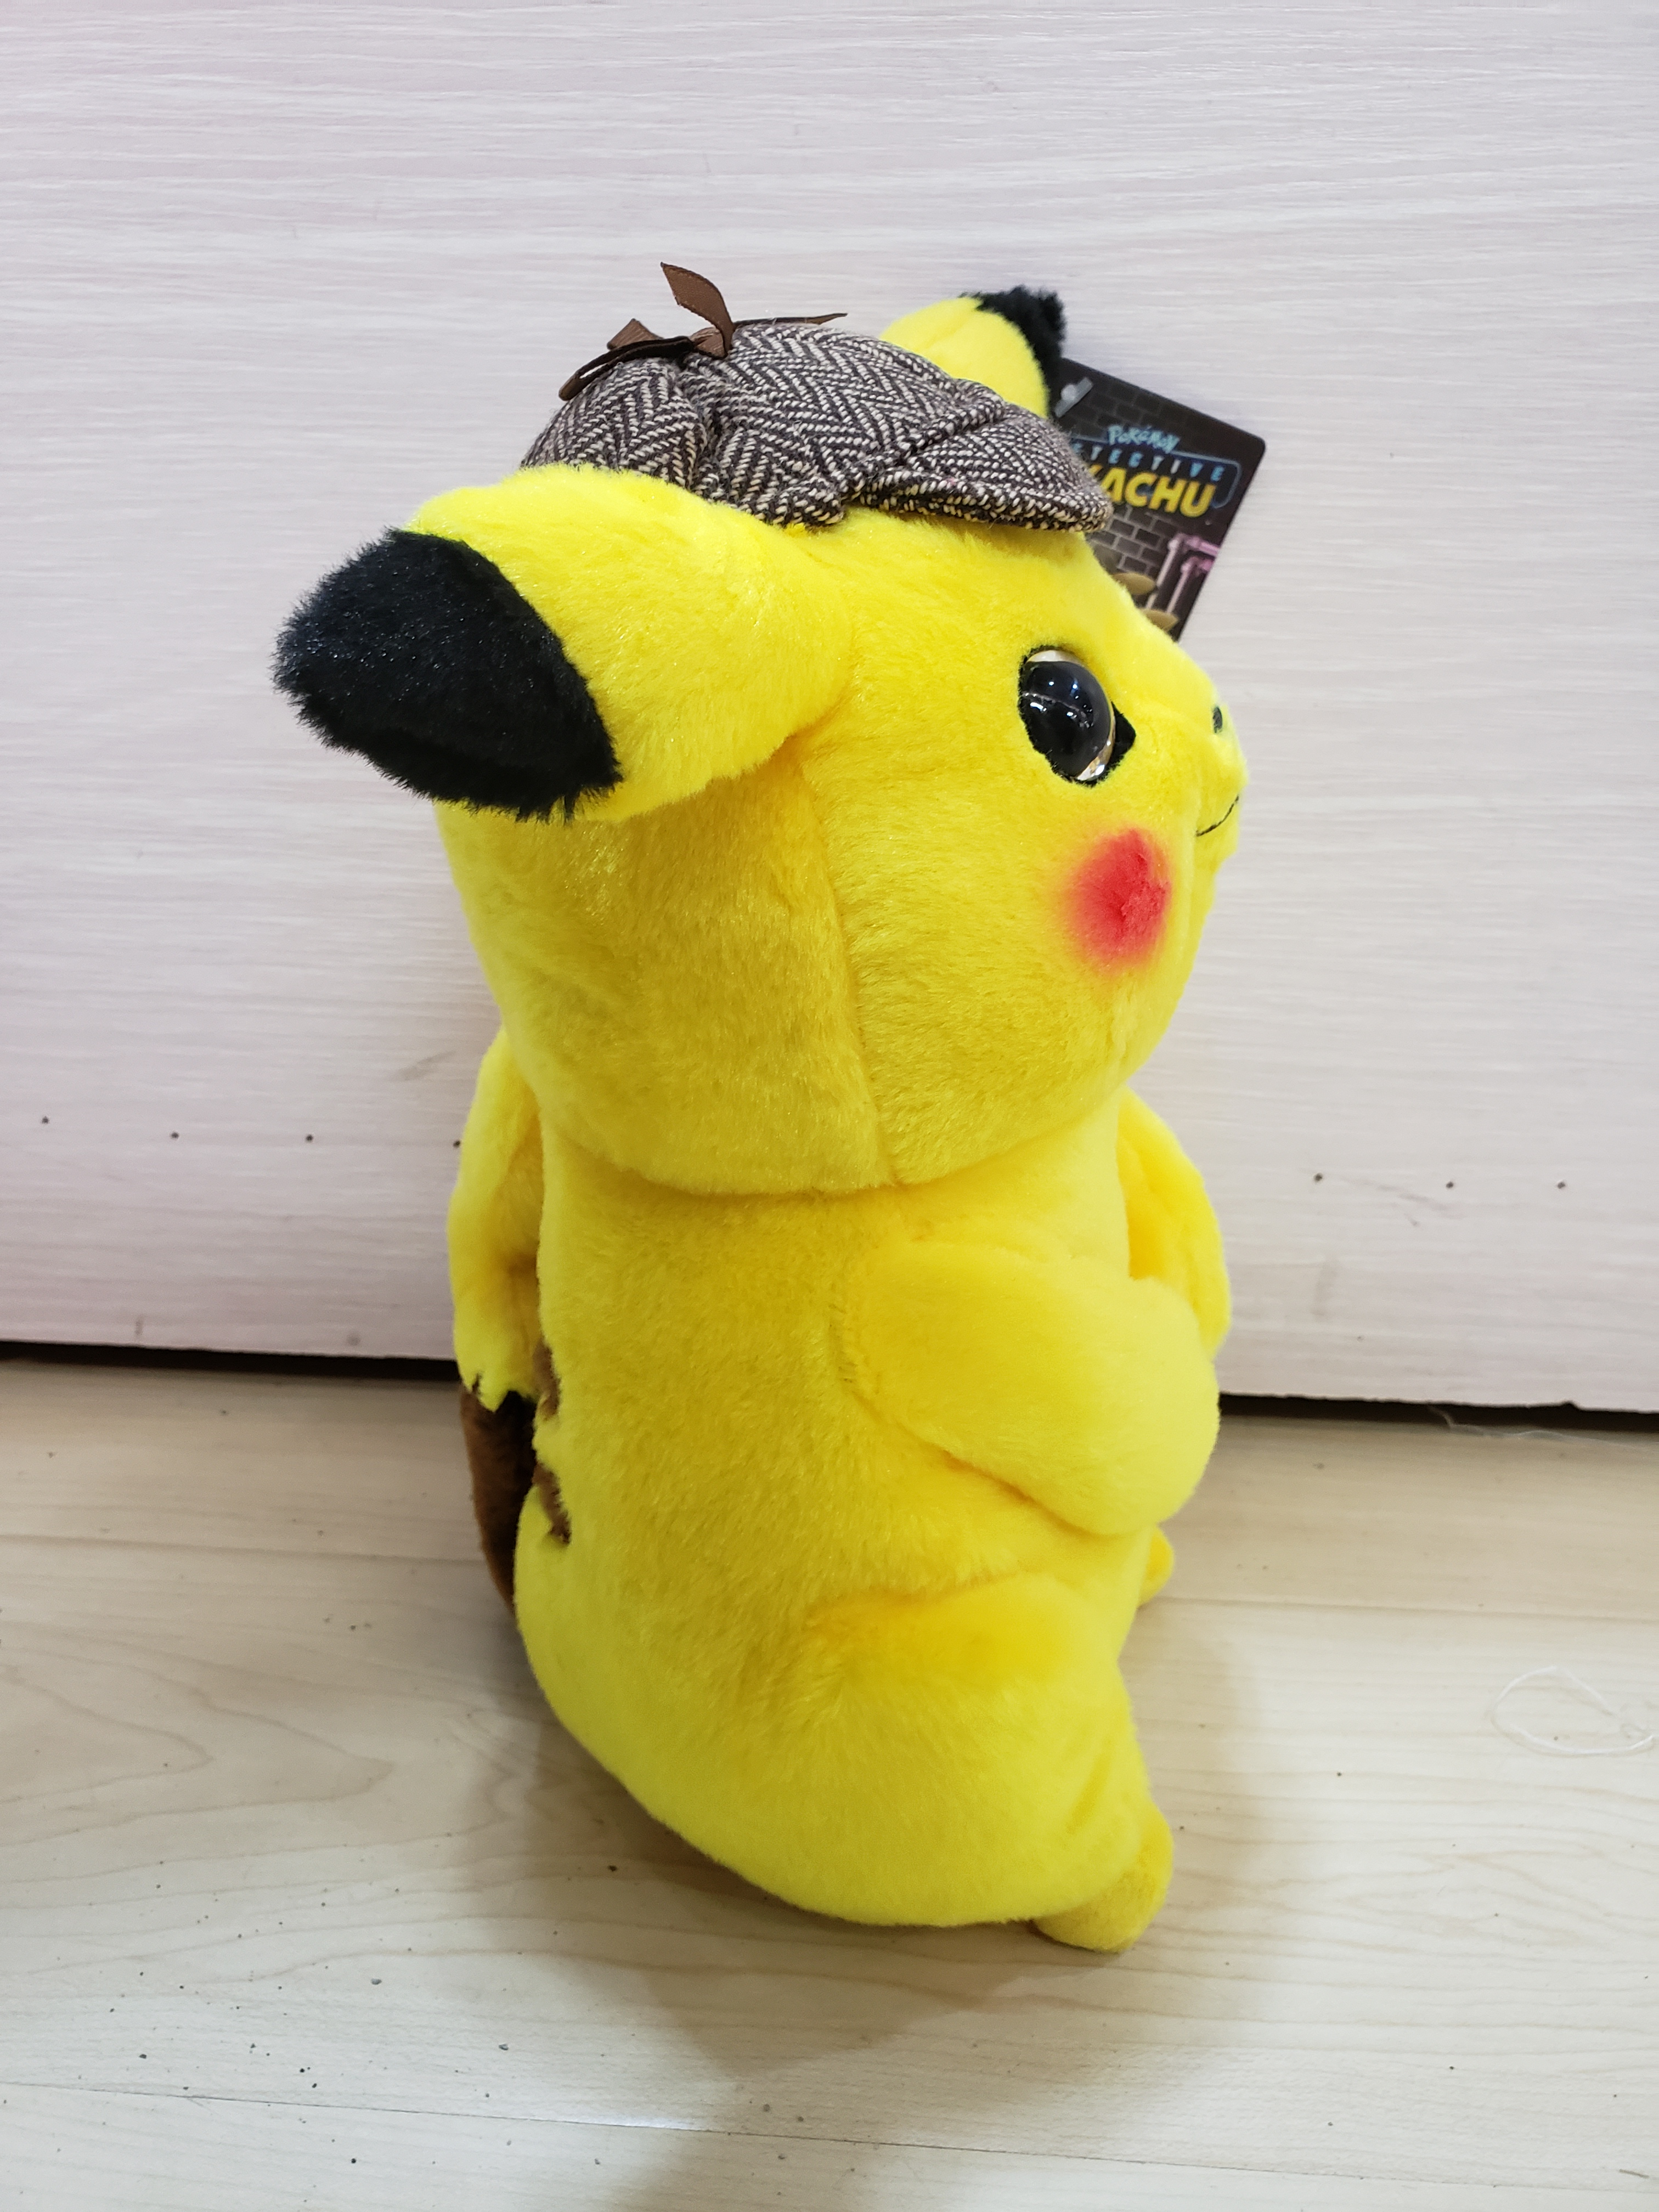 Image 3 - 2019 new 25/30/35cm Detective Pikachu Plush Toy High Quality Cute Anime Plush Toys Childrens Gift Toy Kids Cartoon Peluche-in Stuffed & Plush Animals from Toys & Hobbies